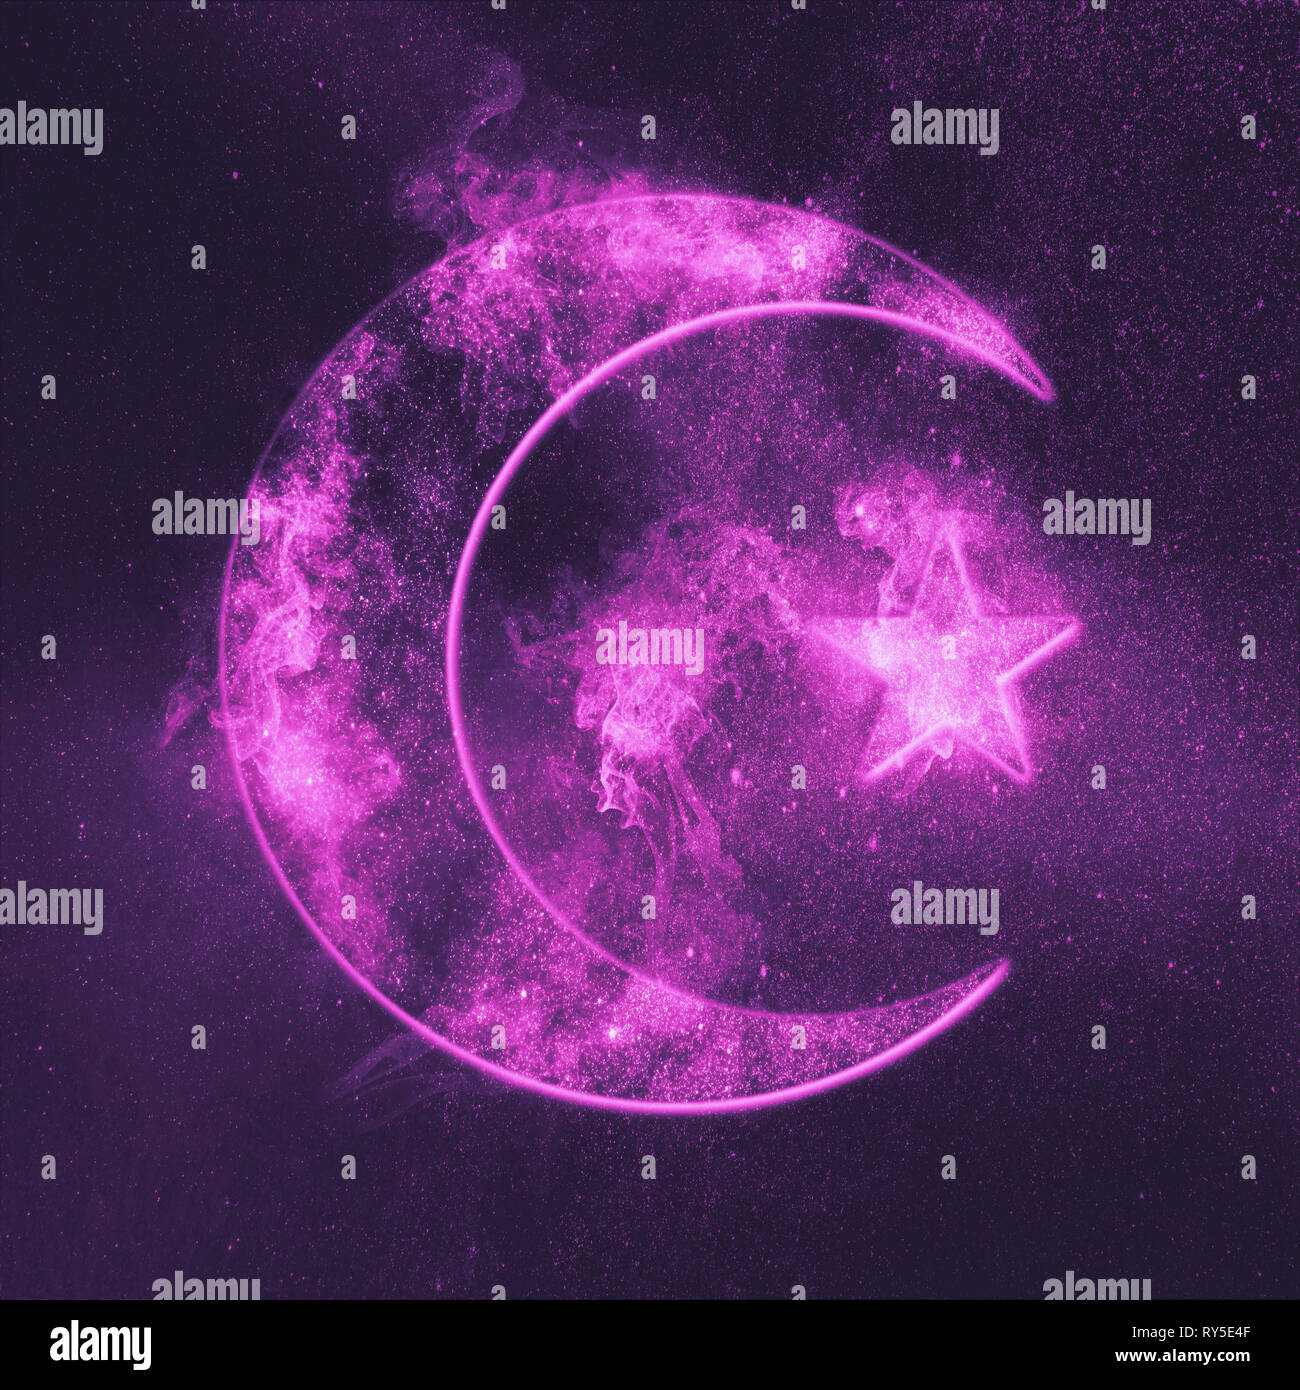 Symbol of Islam. Star and crescent moon. Abstract night sky background. - Stock Image